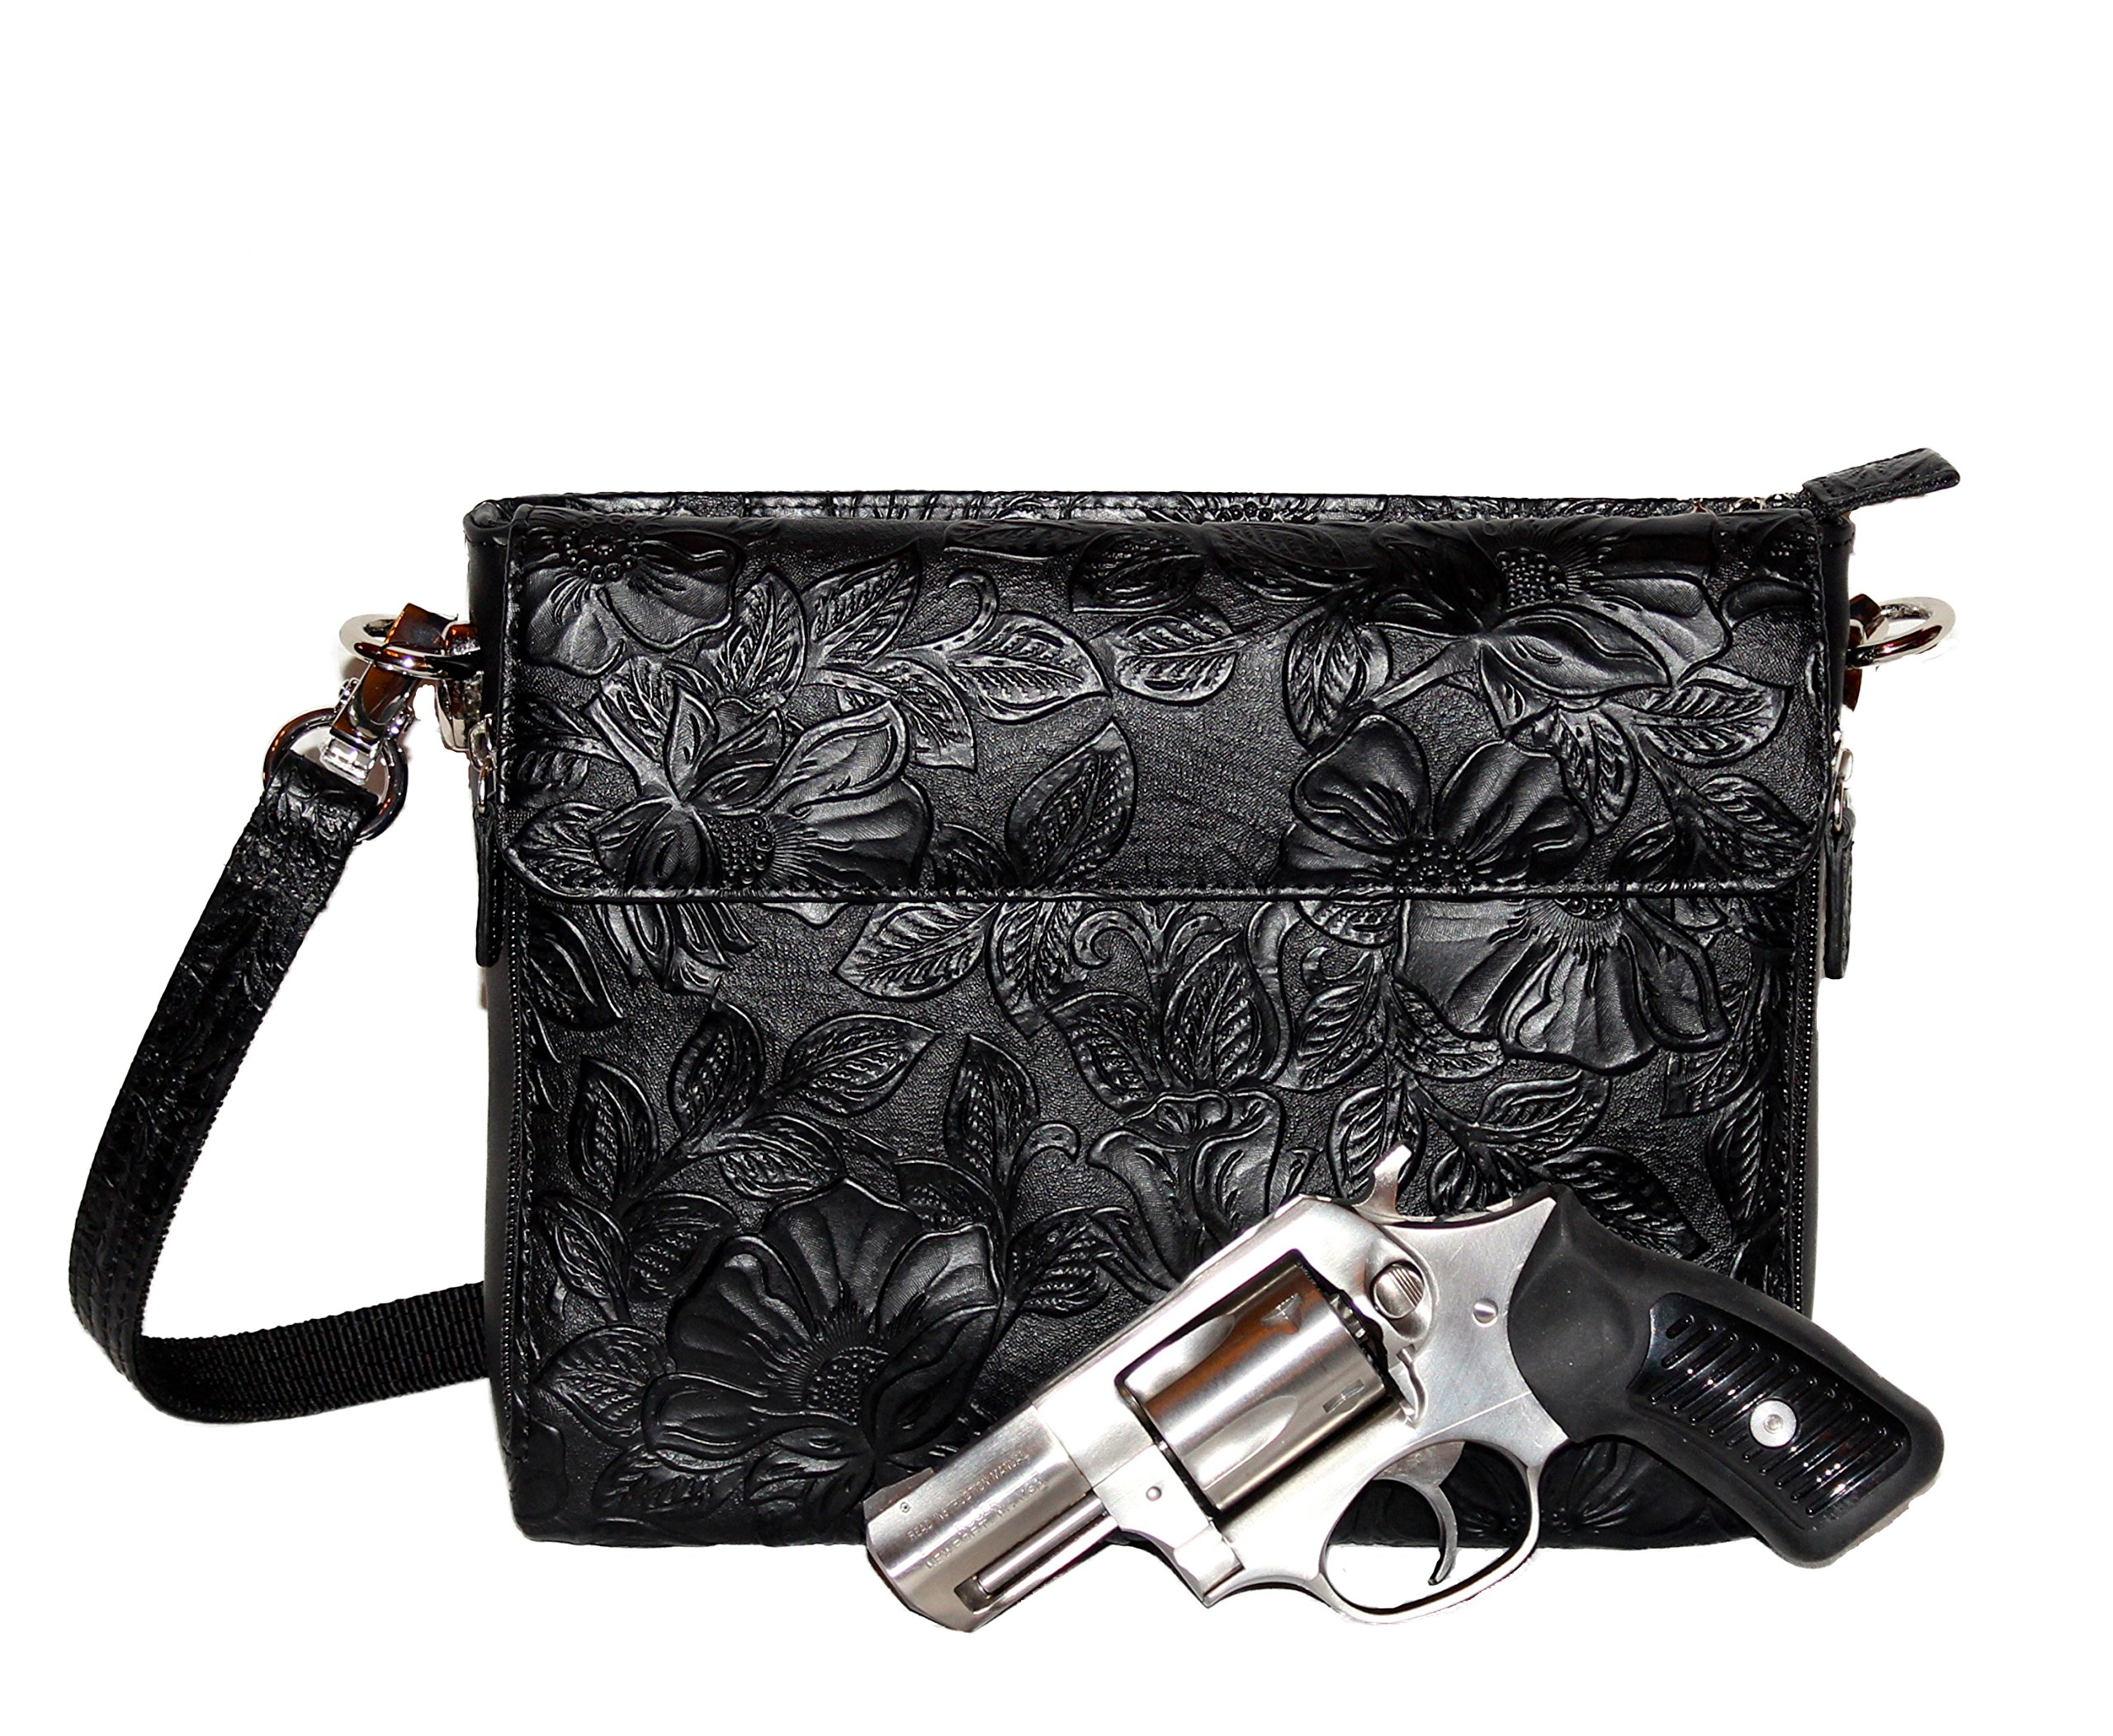 Gun Tote'n Mamas - Concealed Carry Purse - Leather - Tooled American Cowhide (Black)